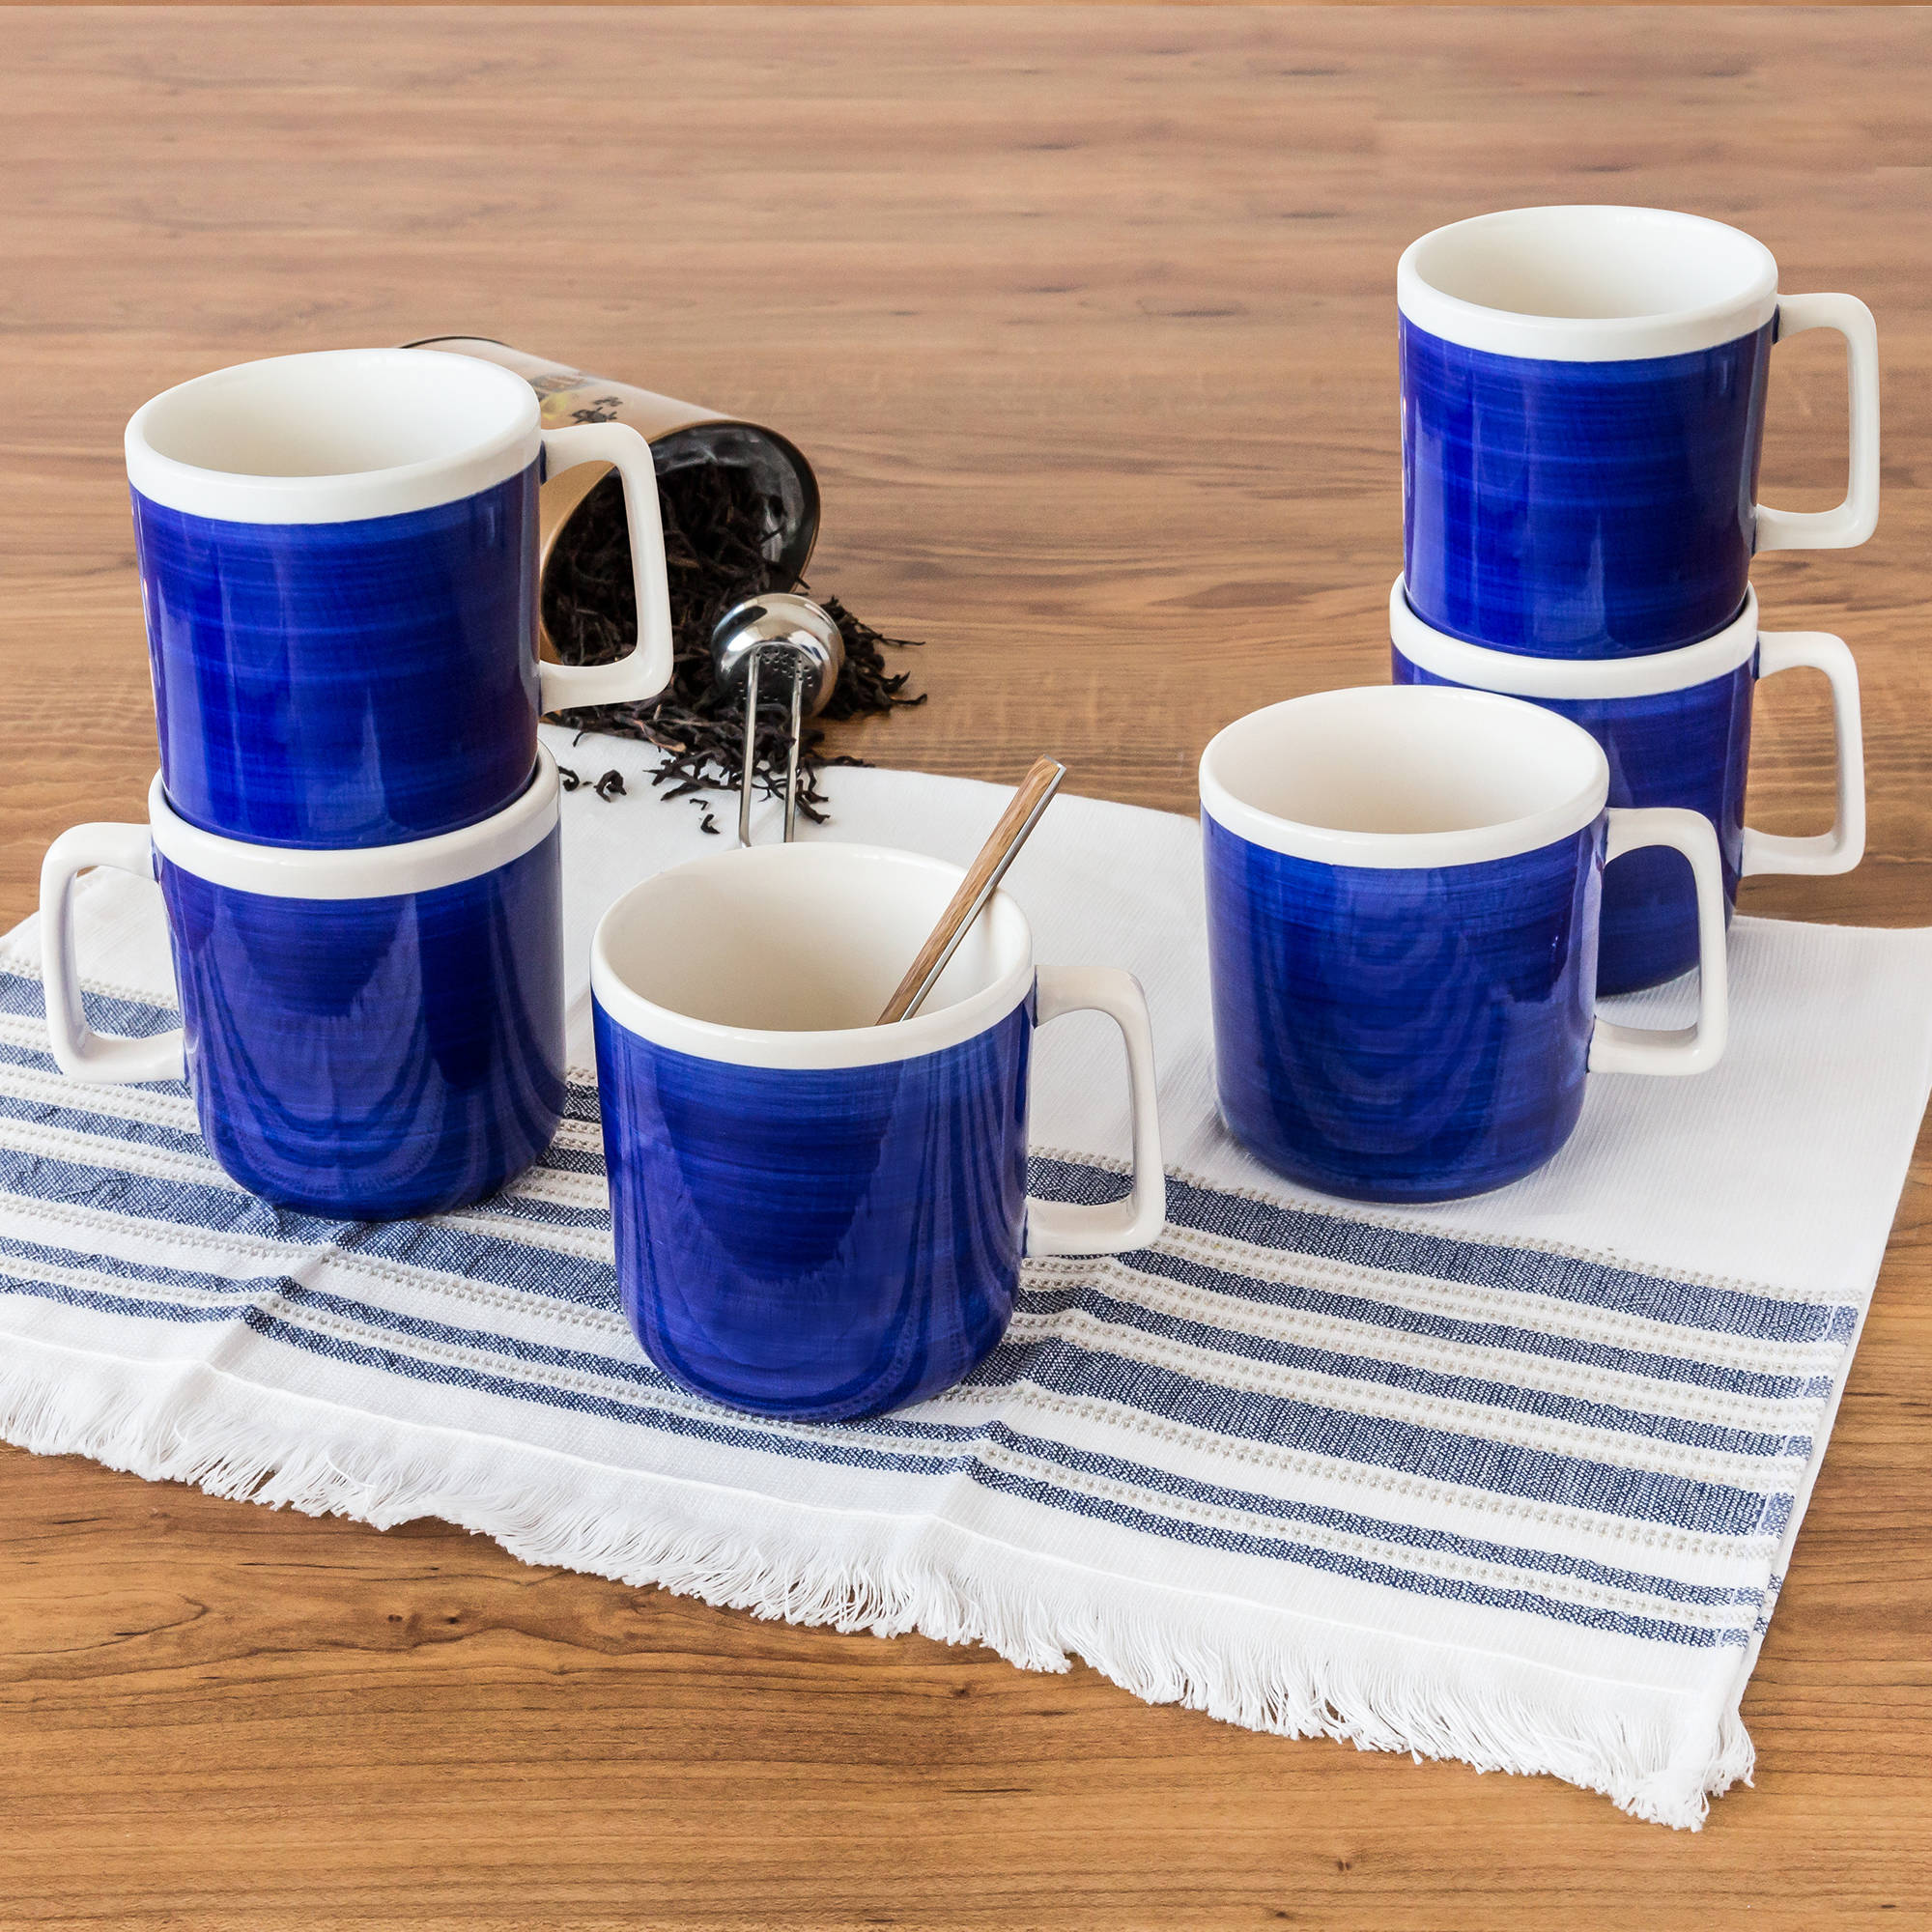 Better Homes & Gardens Indigo Swirl Mugs, Blue, Set of 6